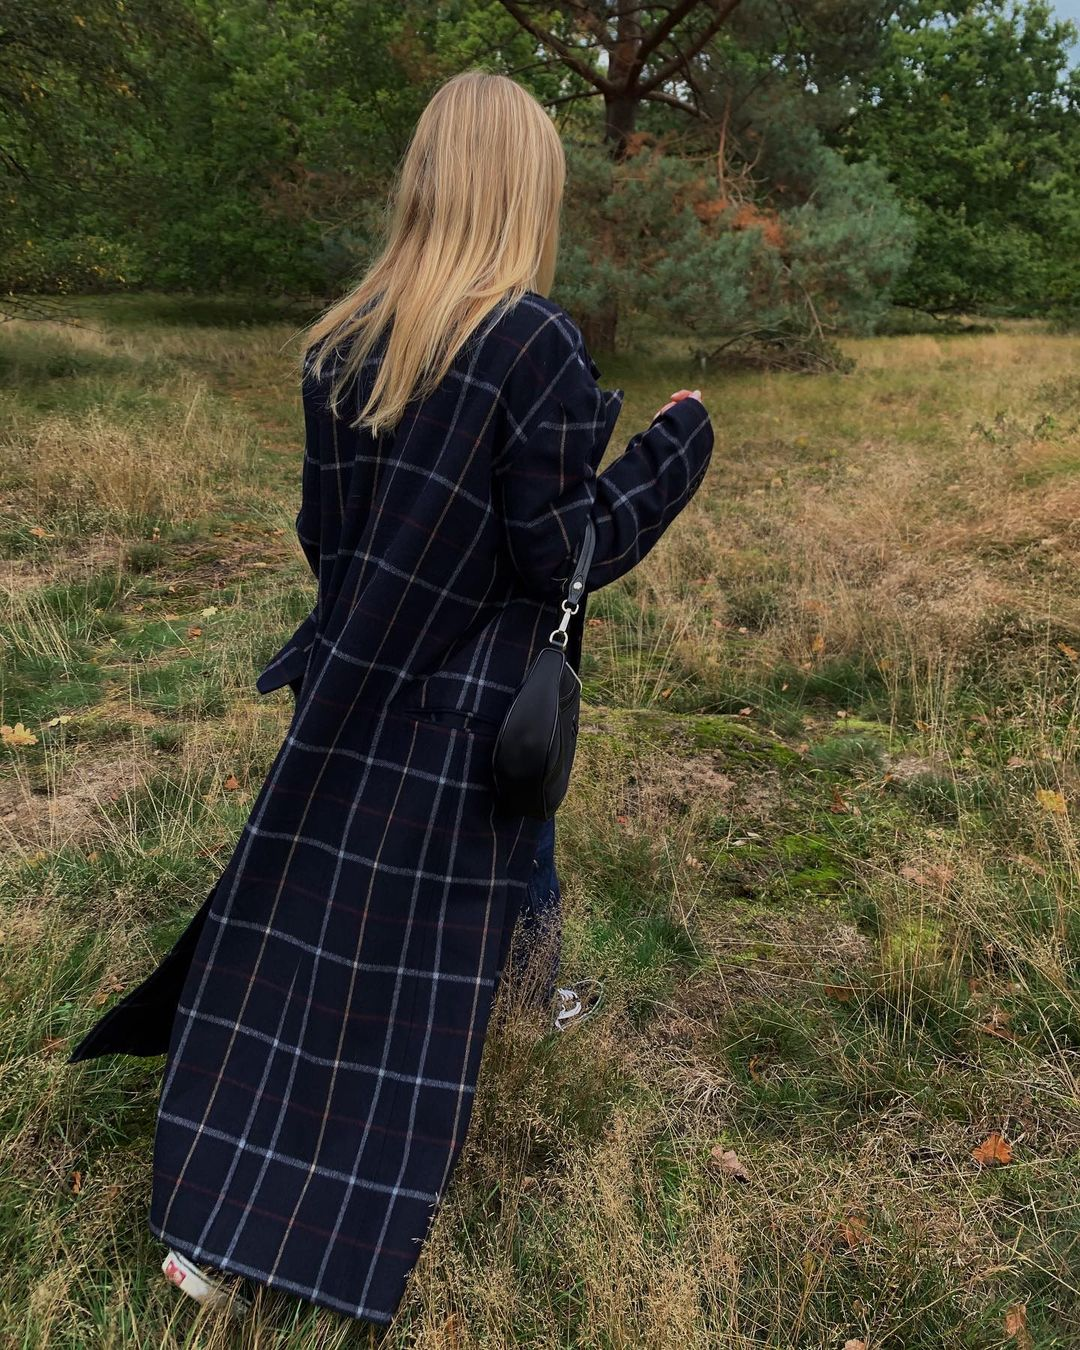 jeanette-madsen-awake-mode-double-breasted-checked-wool-blend-coat-instagram